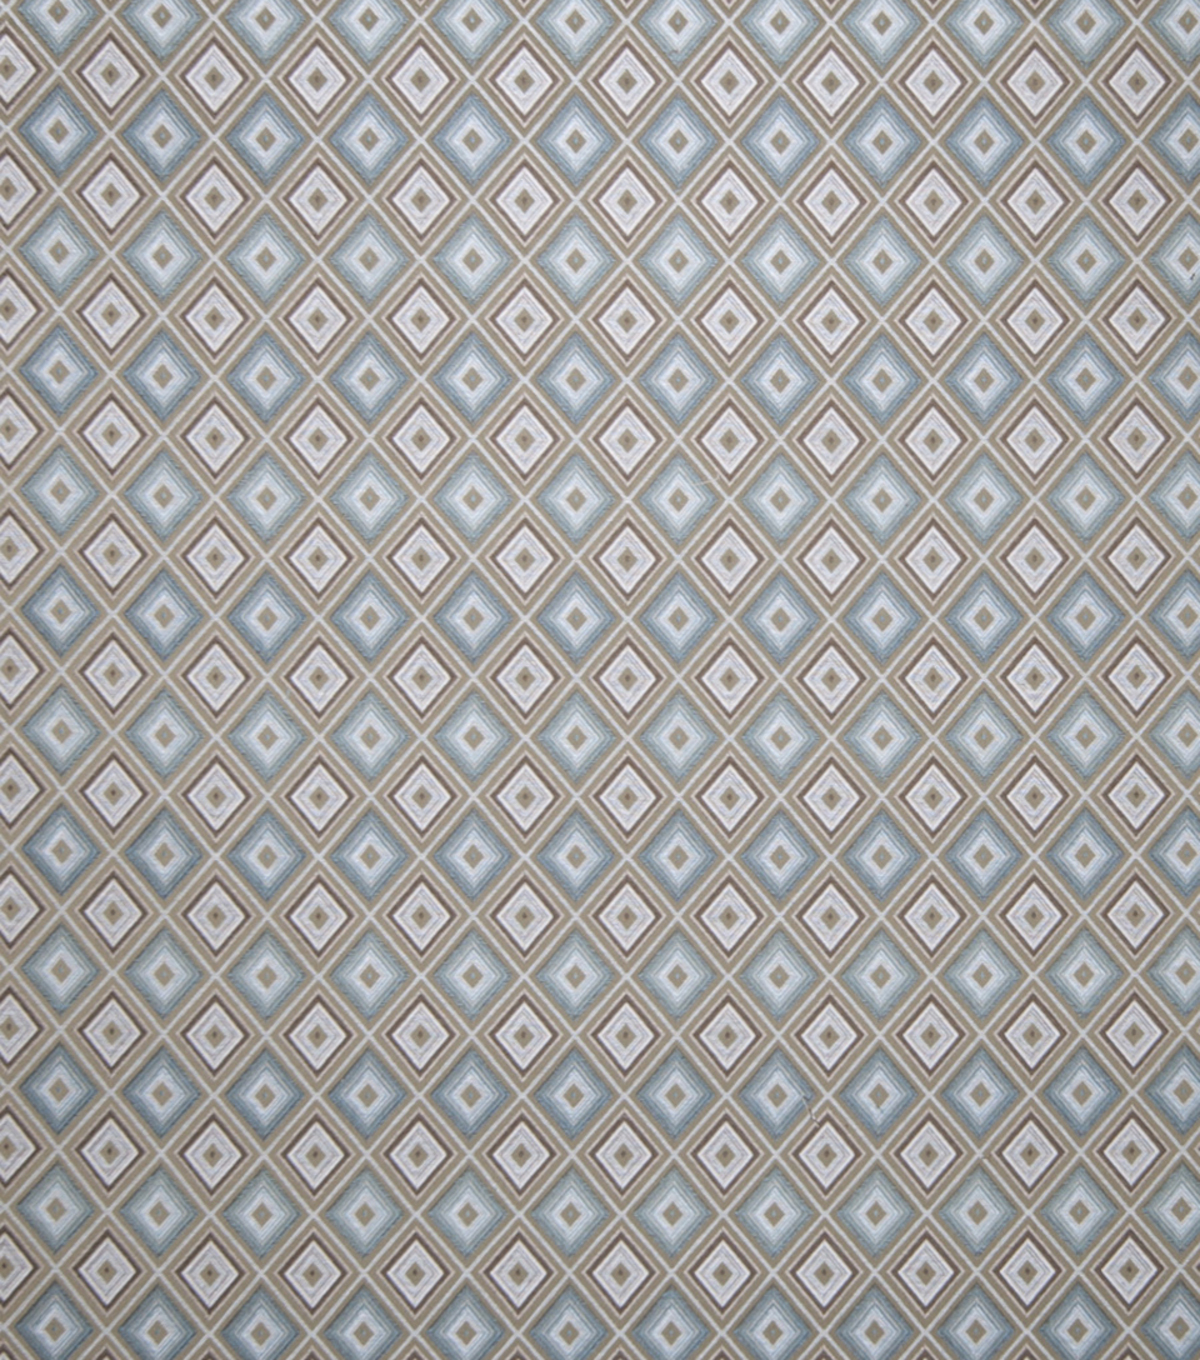 Home Decor 8\u0022x8\u0022 Fabric Swatch-Upholstery Fabric Eaton Square Cougar Antique